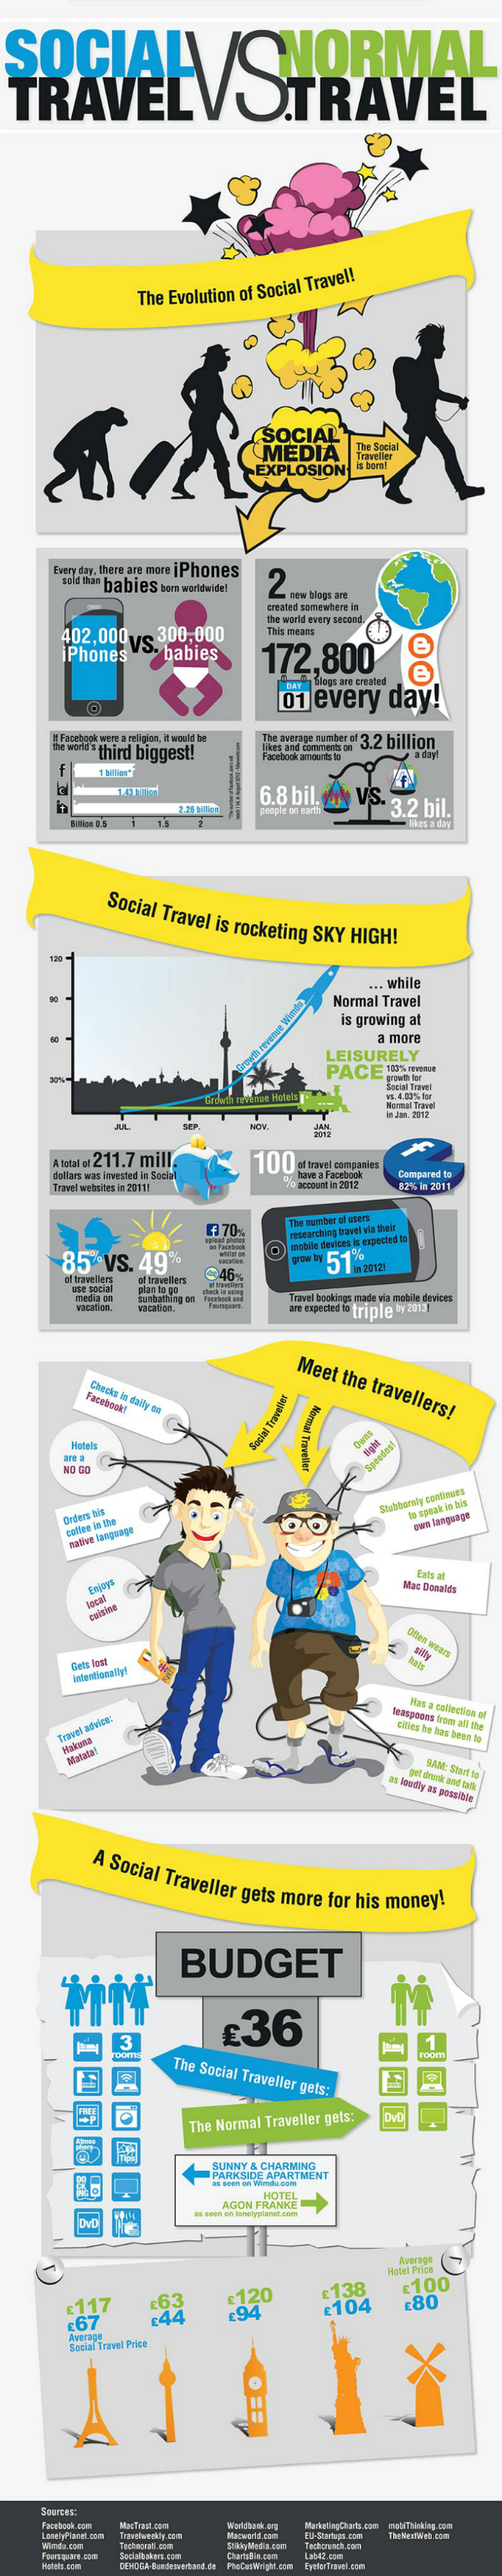 social travel infographic